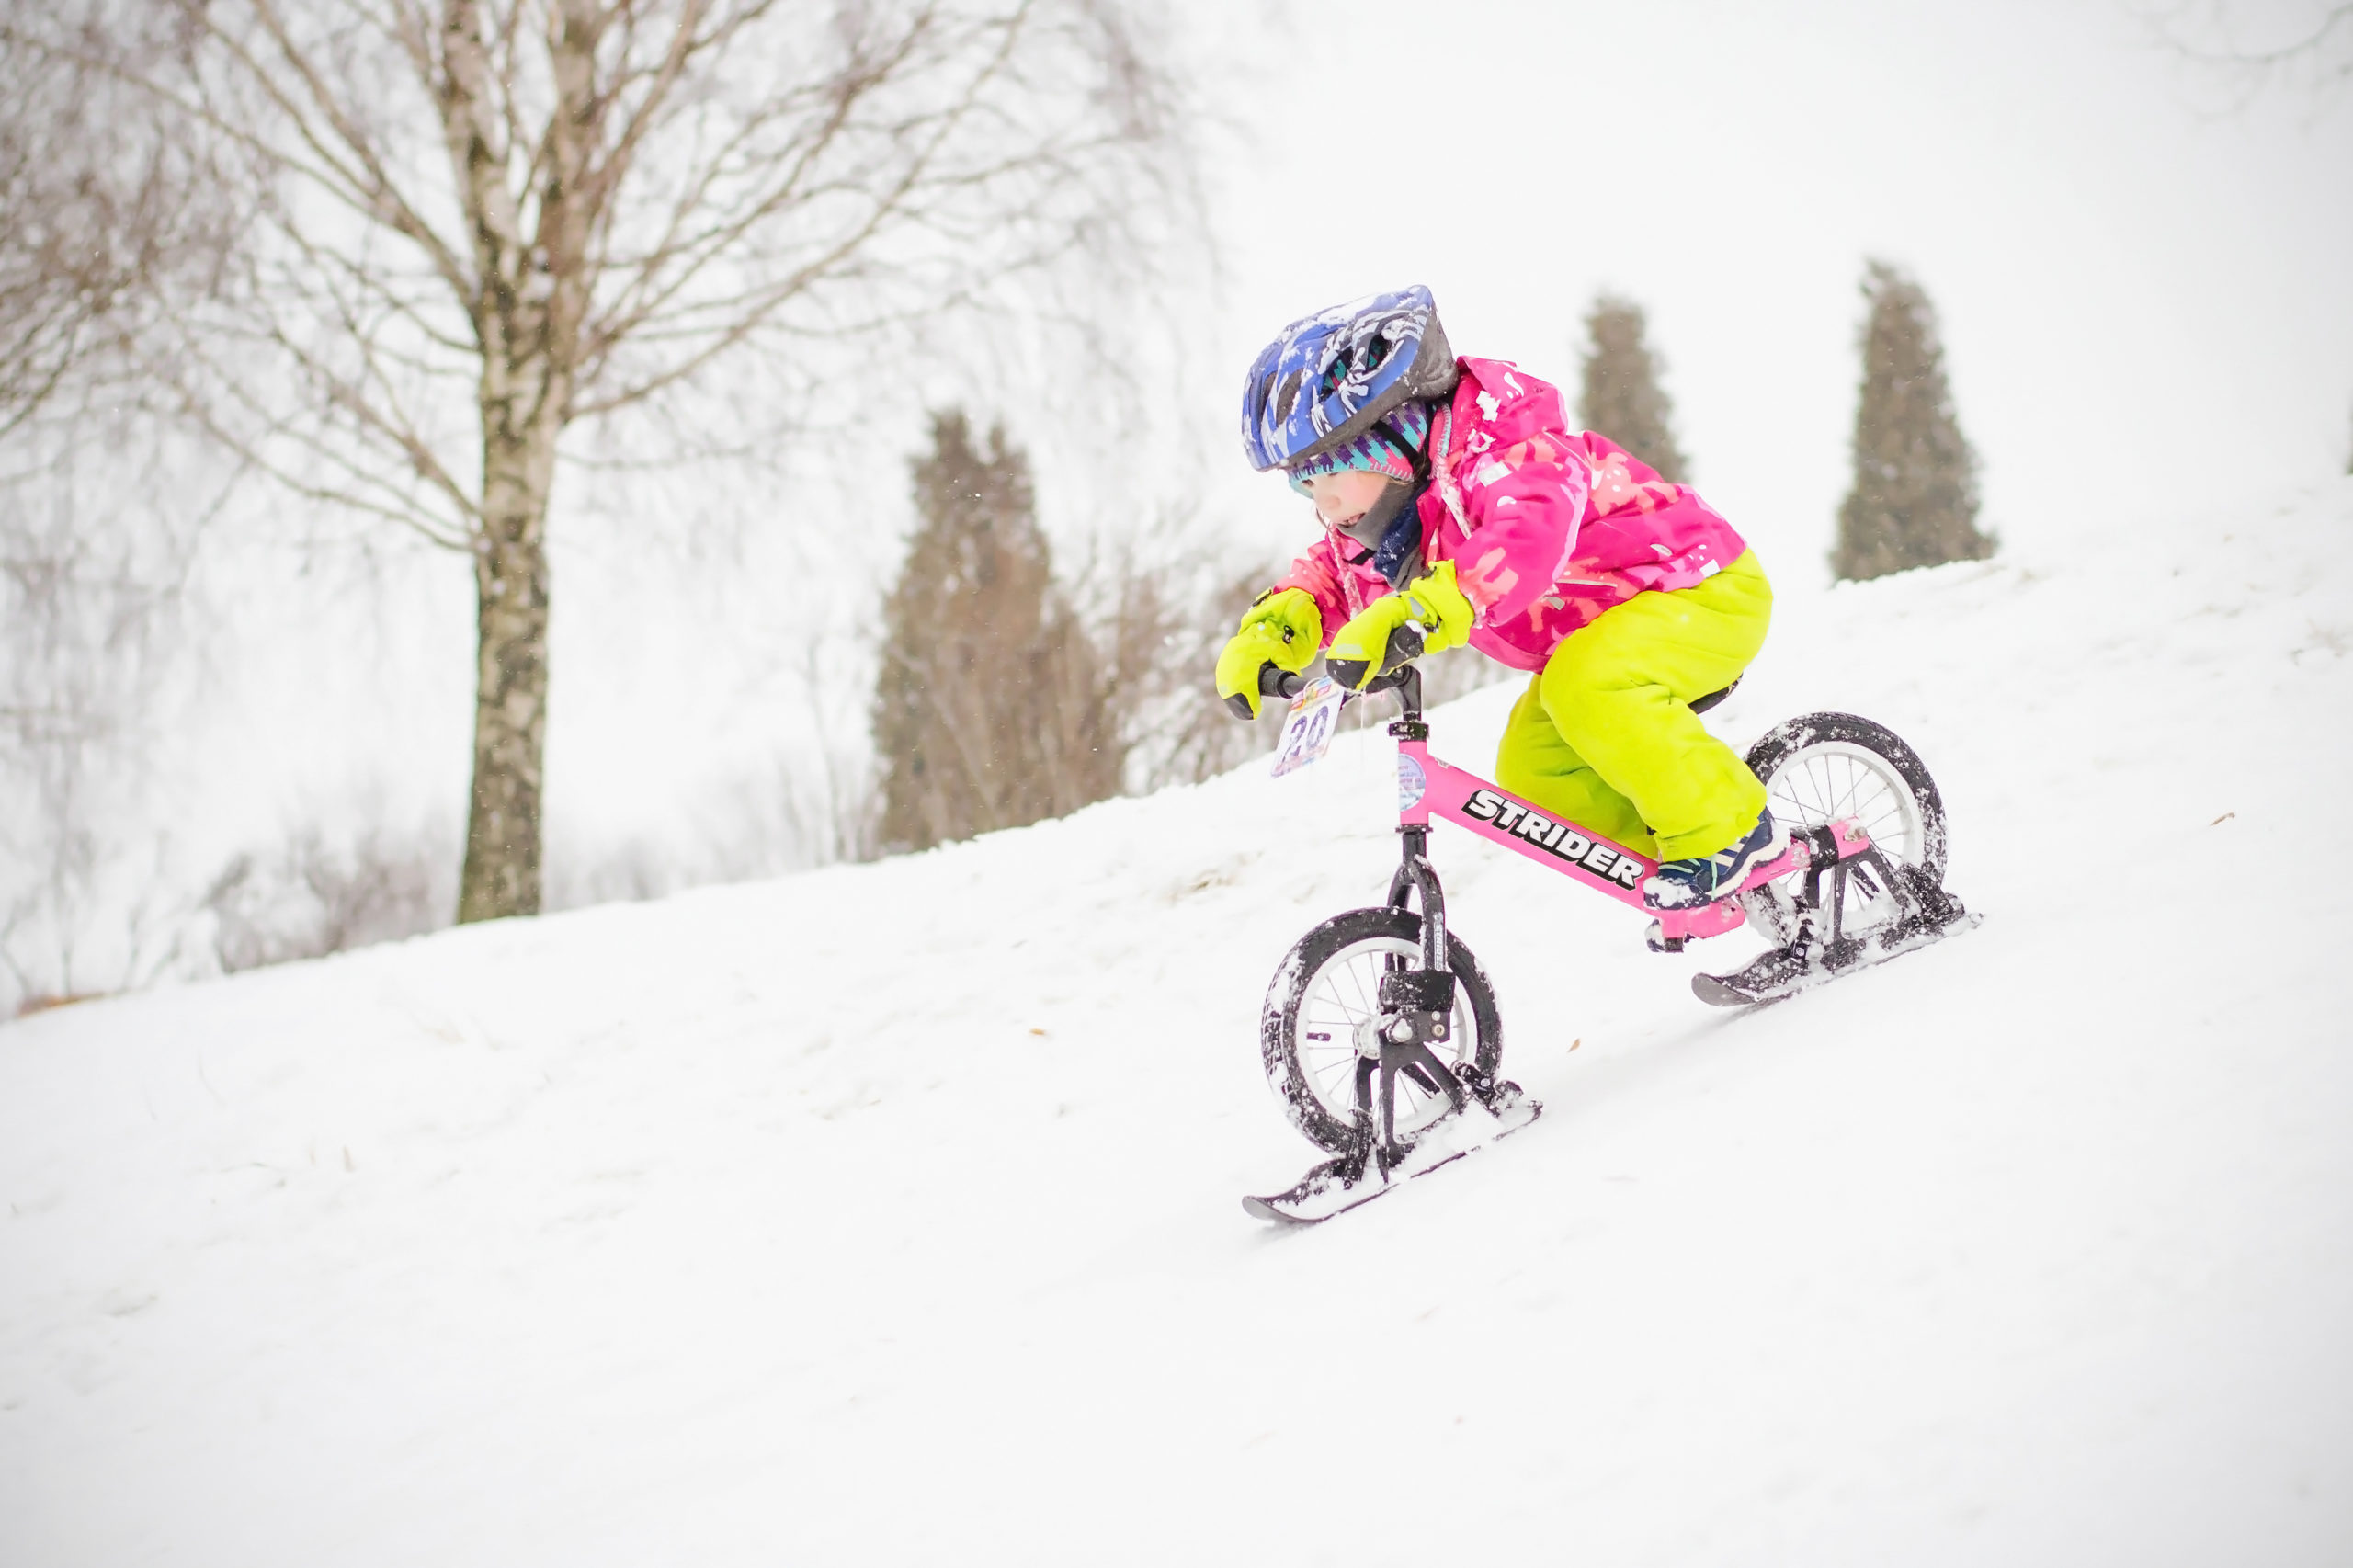 Girl riding down snow hill on pink 12 Sport with Strider skis attached